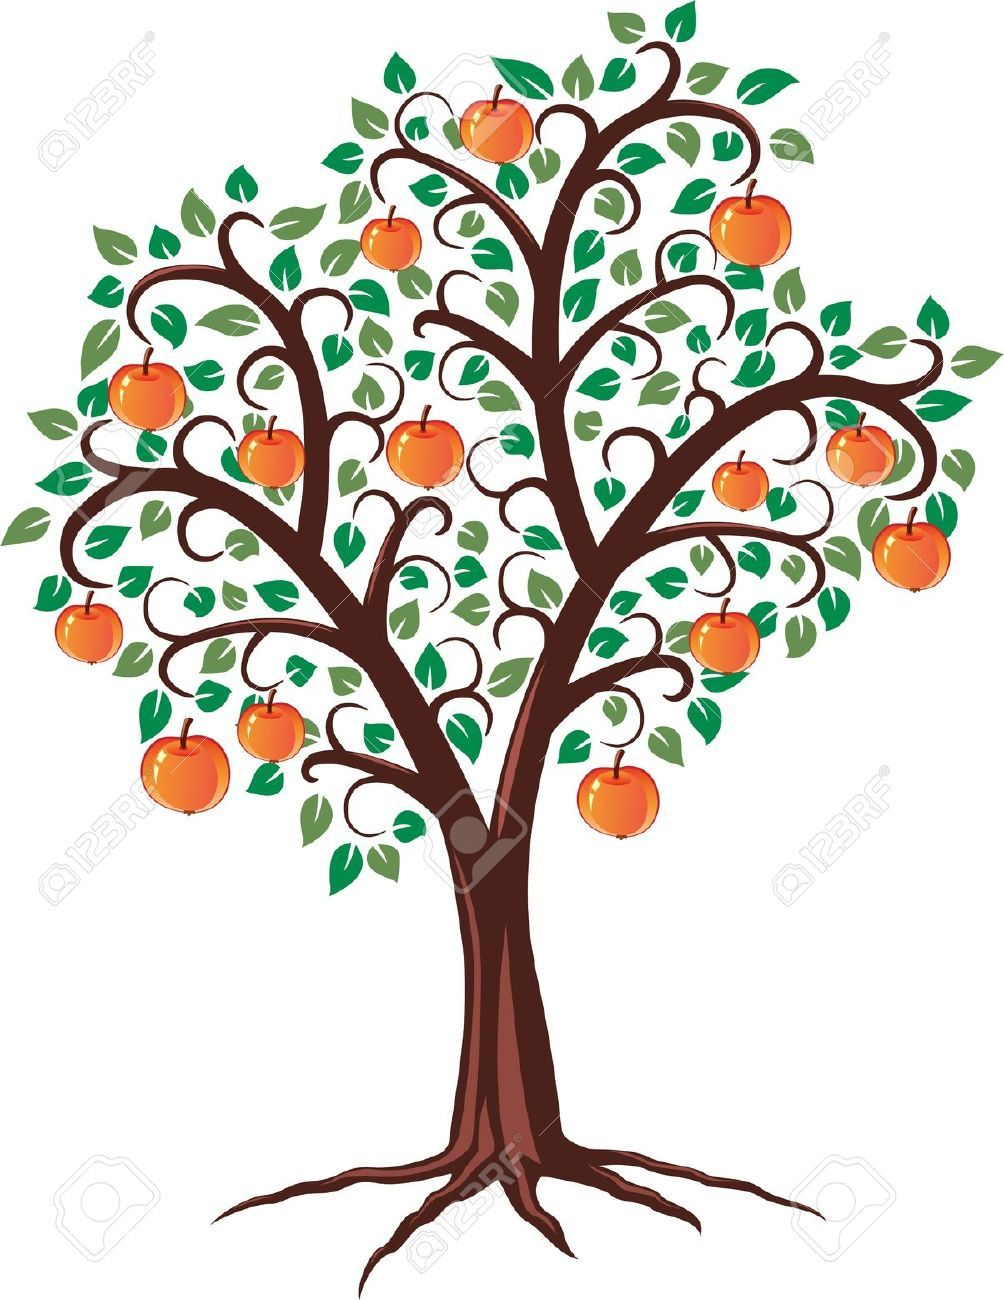 Free tree with fruits and roots clipart.